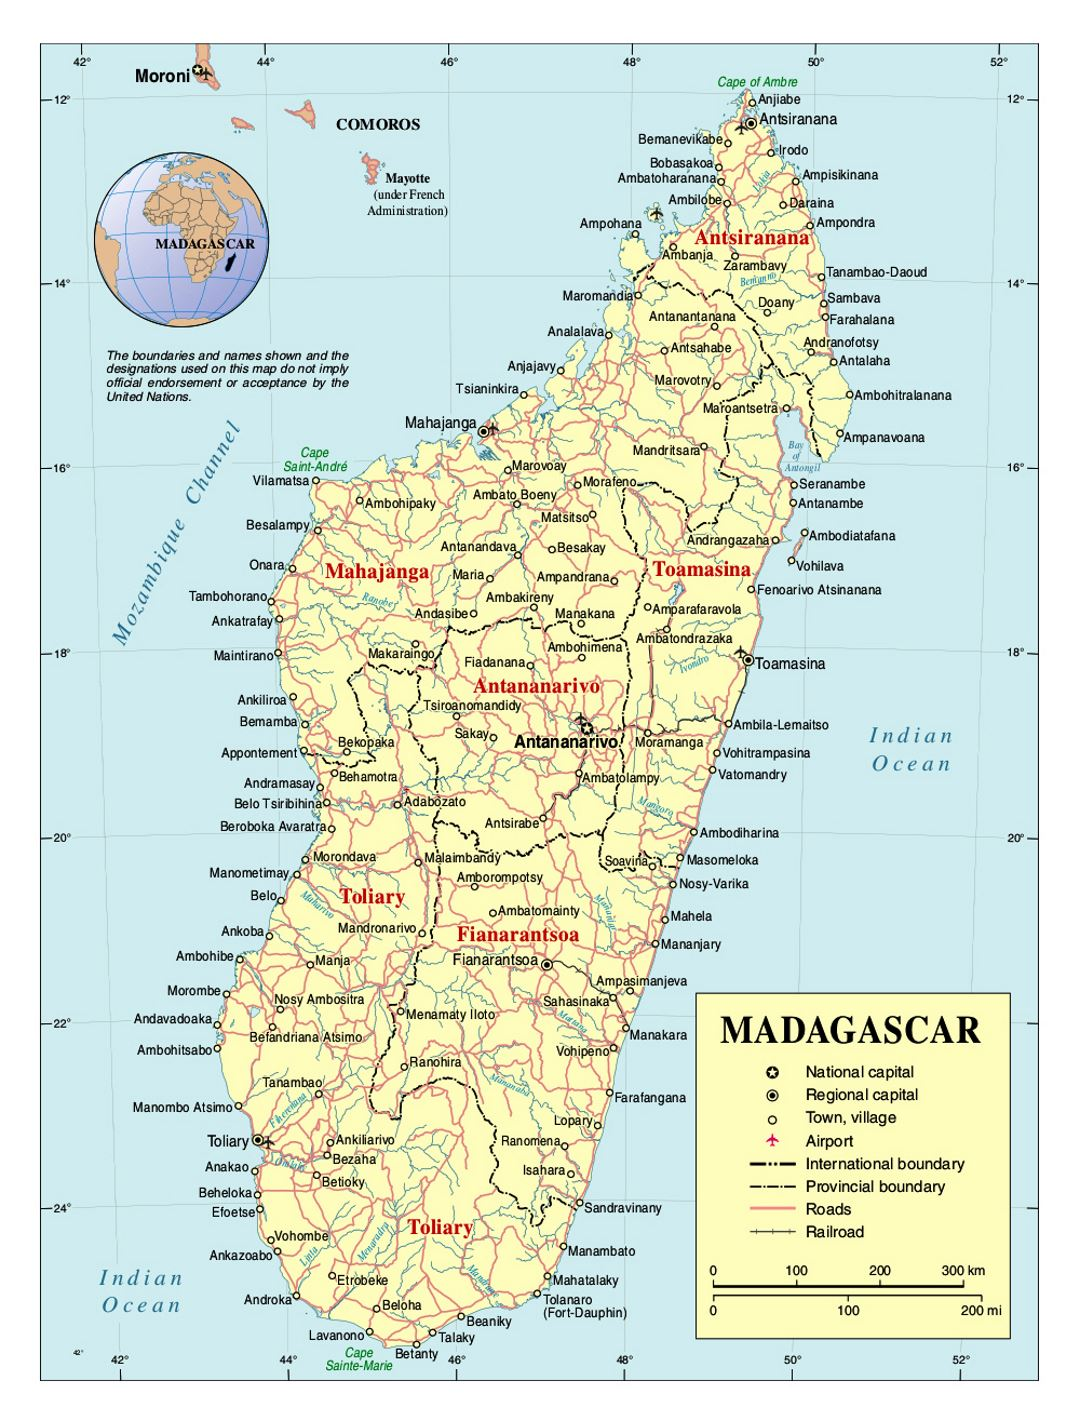 Detailed political and administrative map of Madagascar with roads, railroads, cities and airports